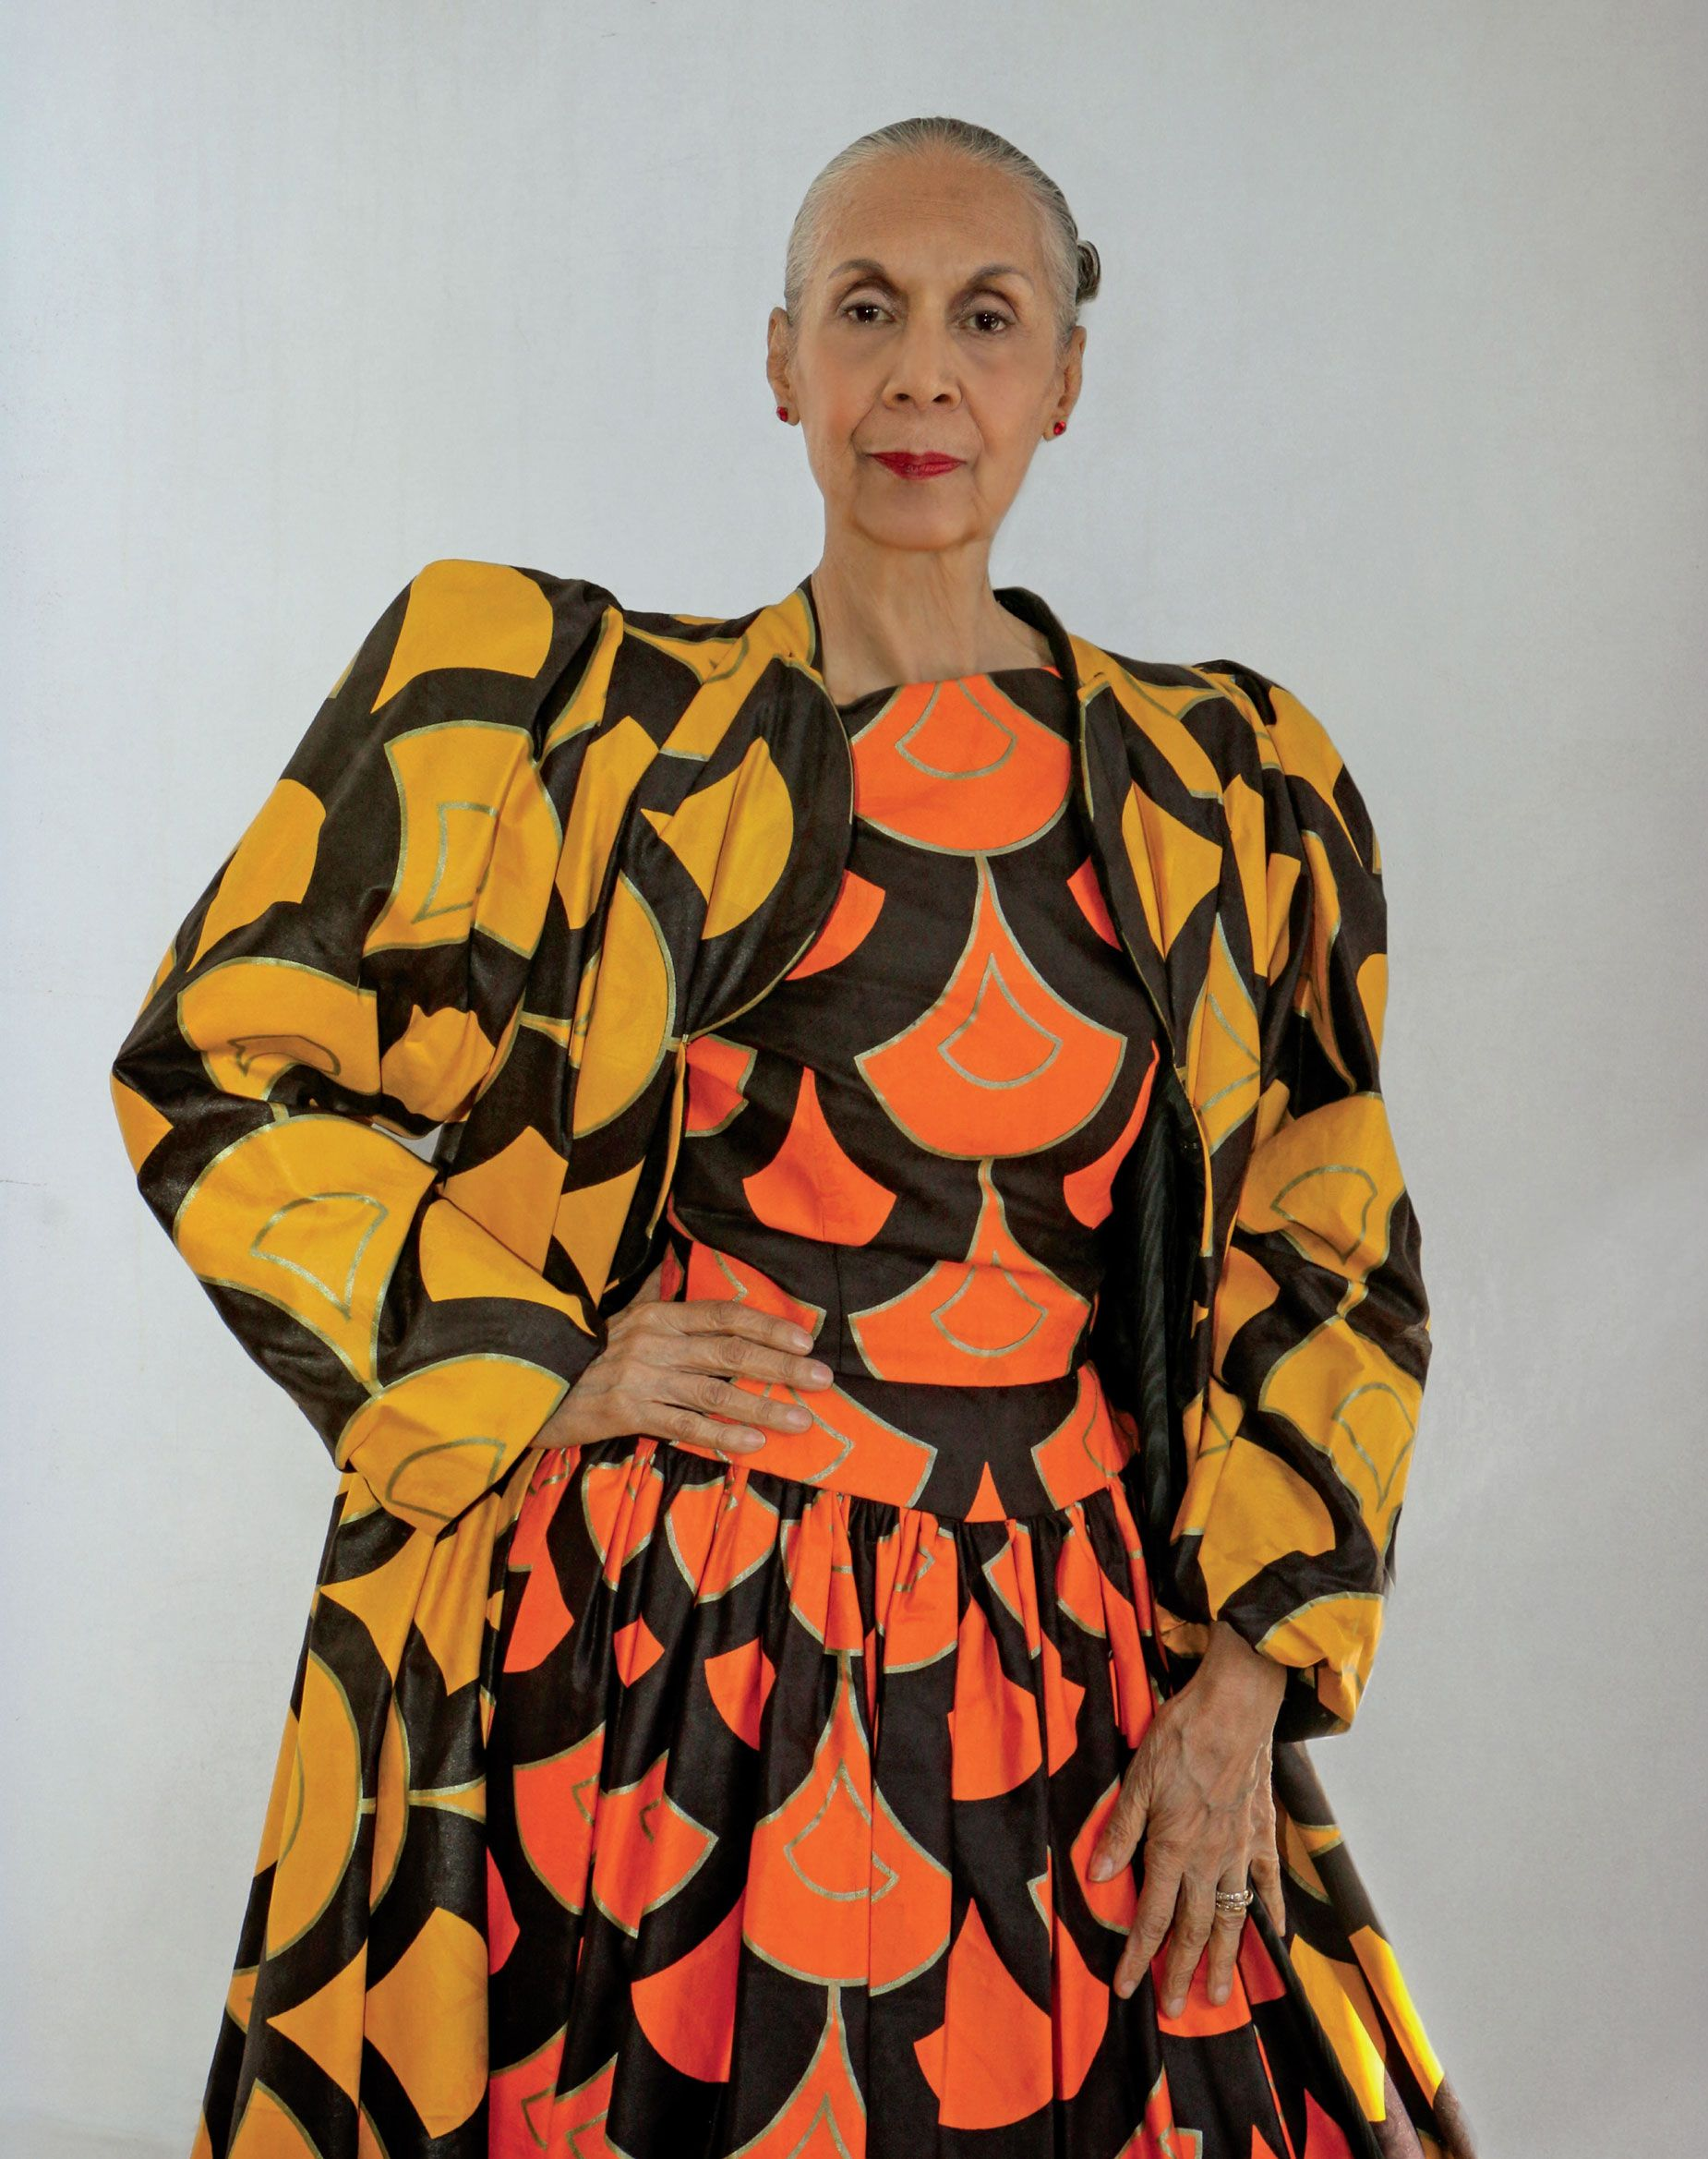 Let These Women Over 50 Show You How Style Only Gets Better with Age - Carmen de Lavallade from InStyle.com